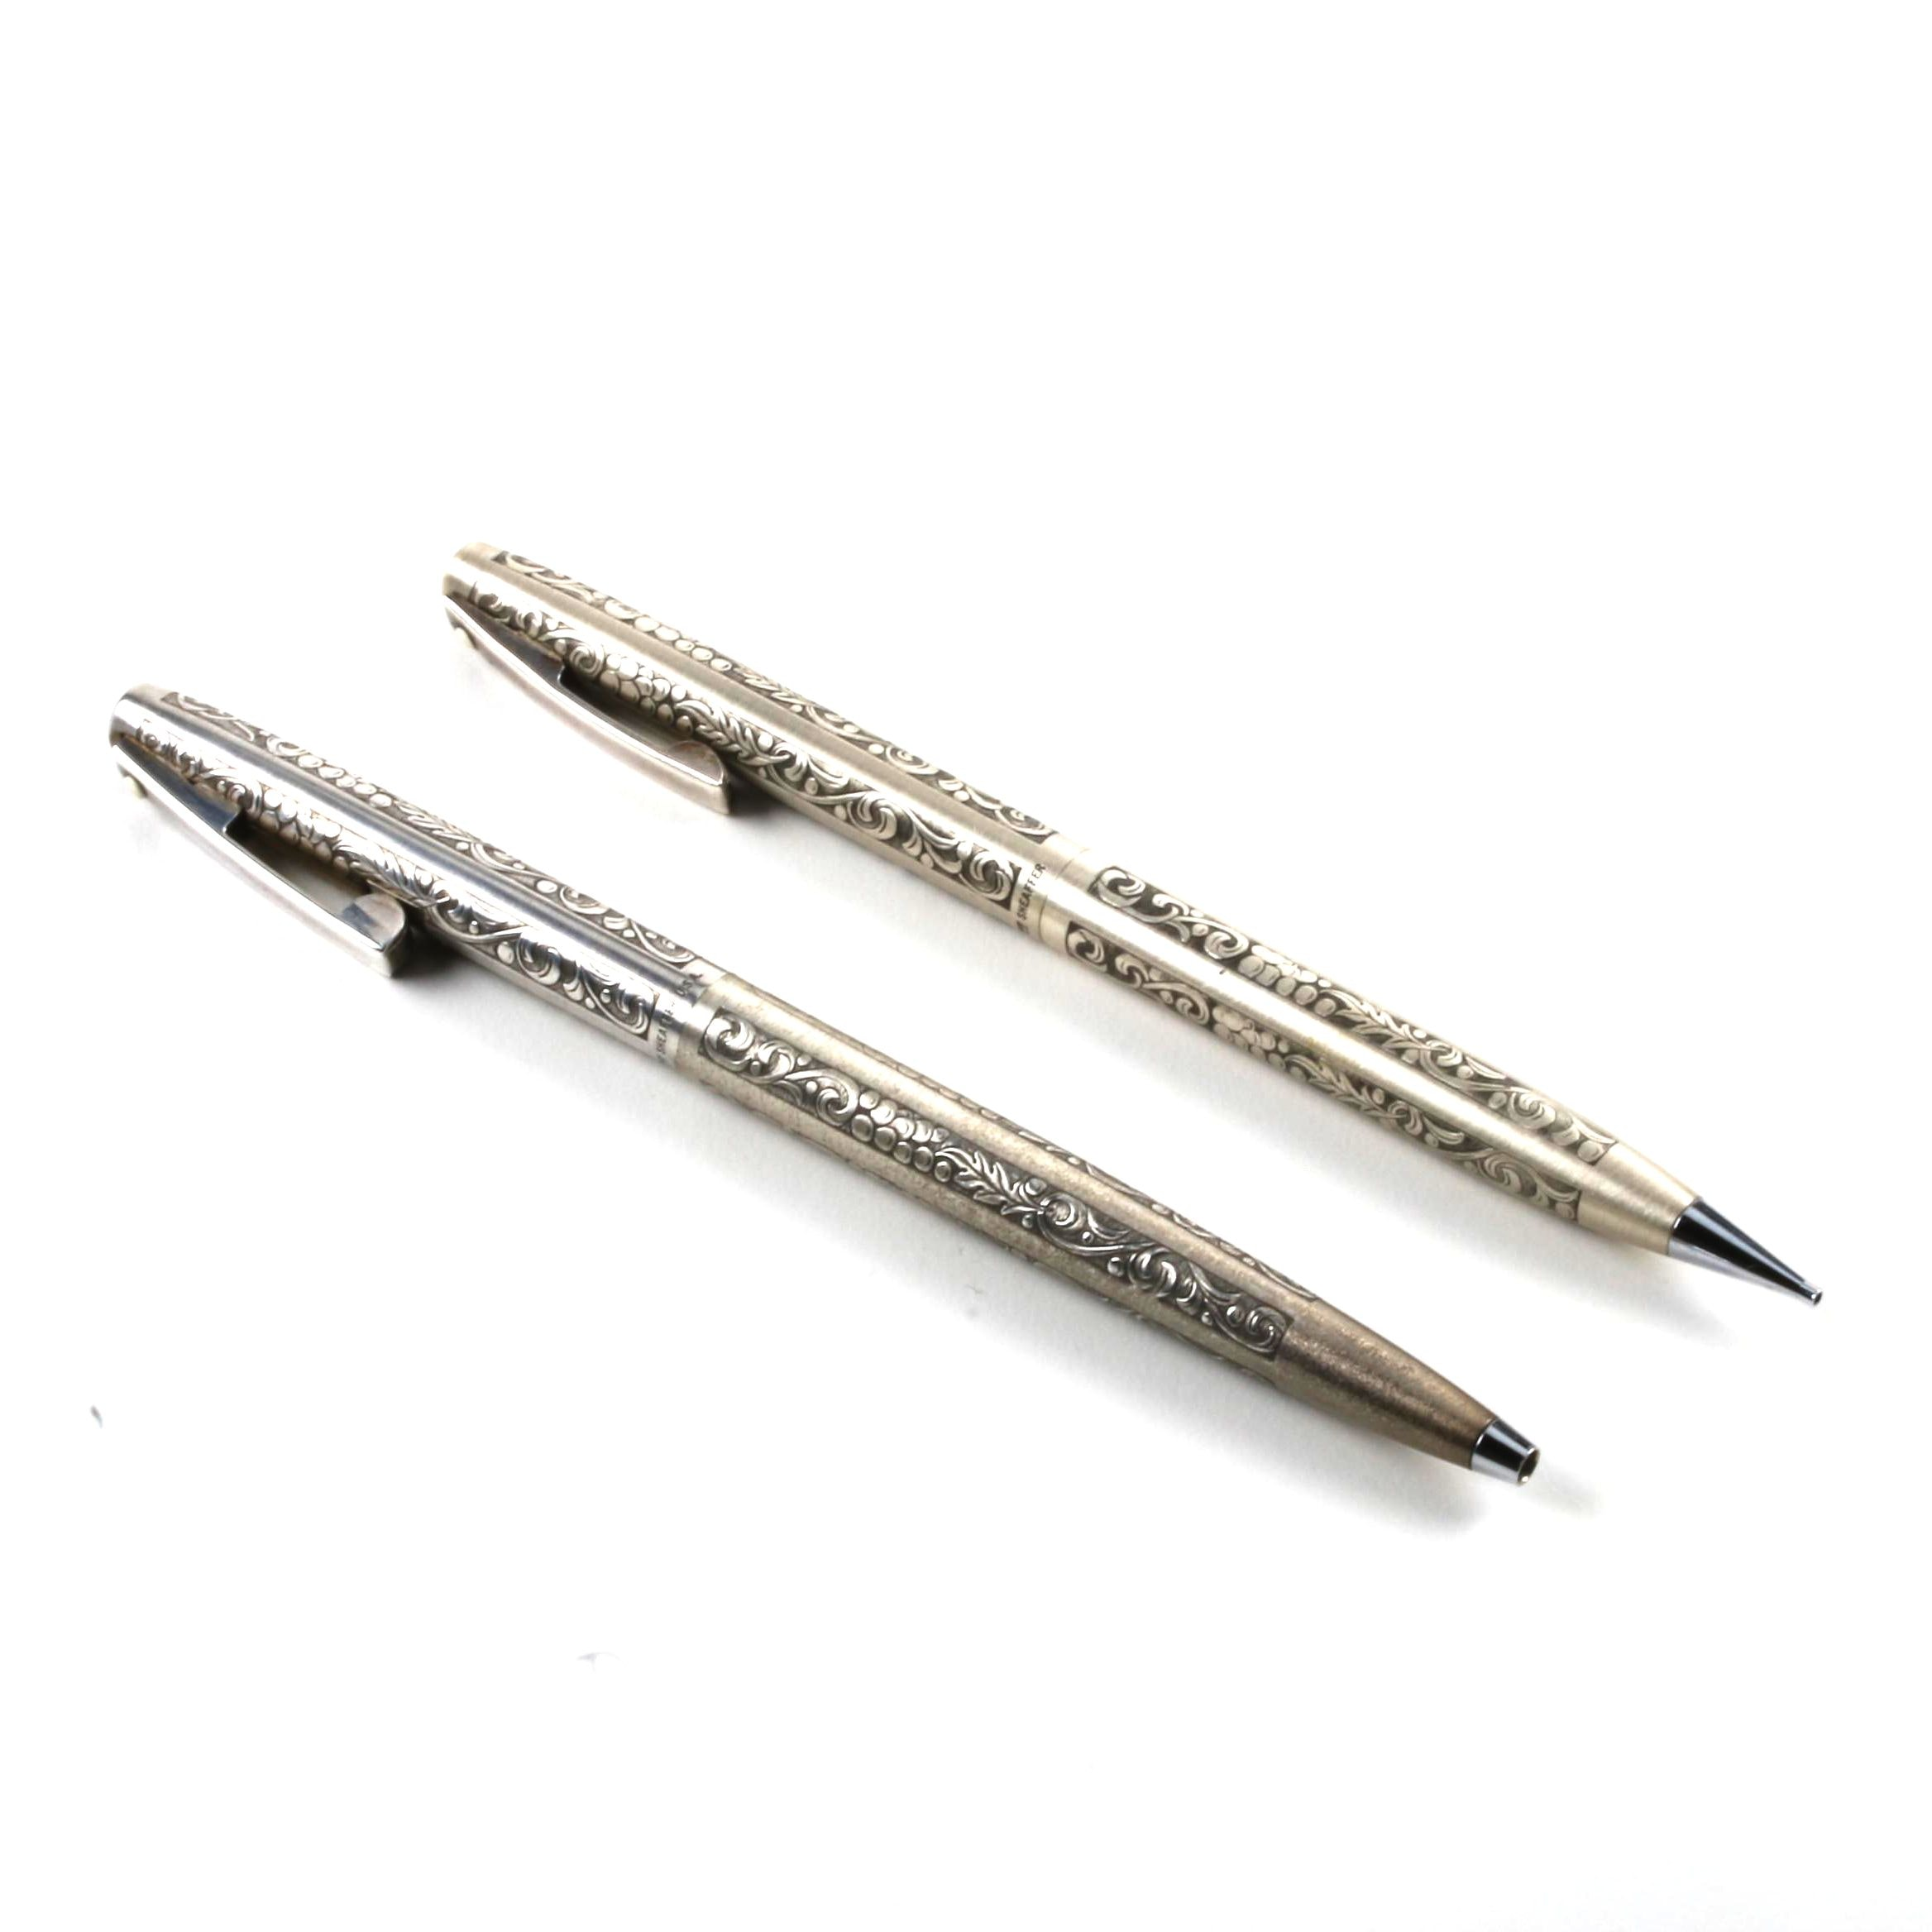 Sheaffer Sterling Silver Pen and Pencil Set